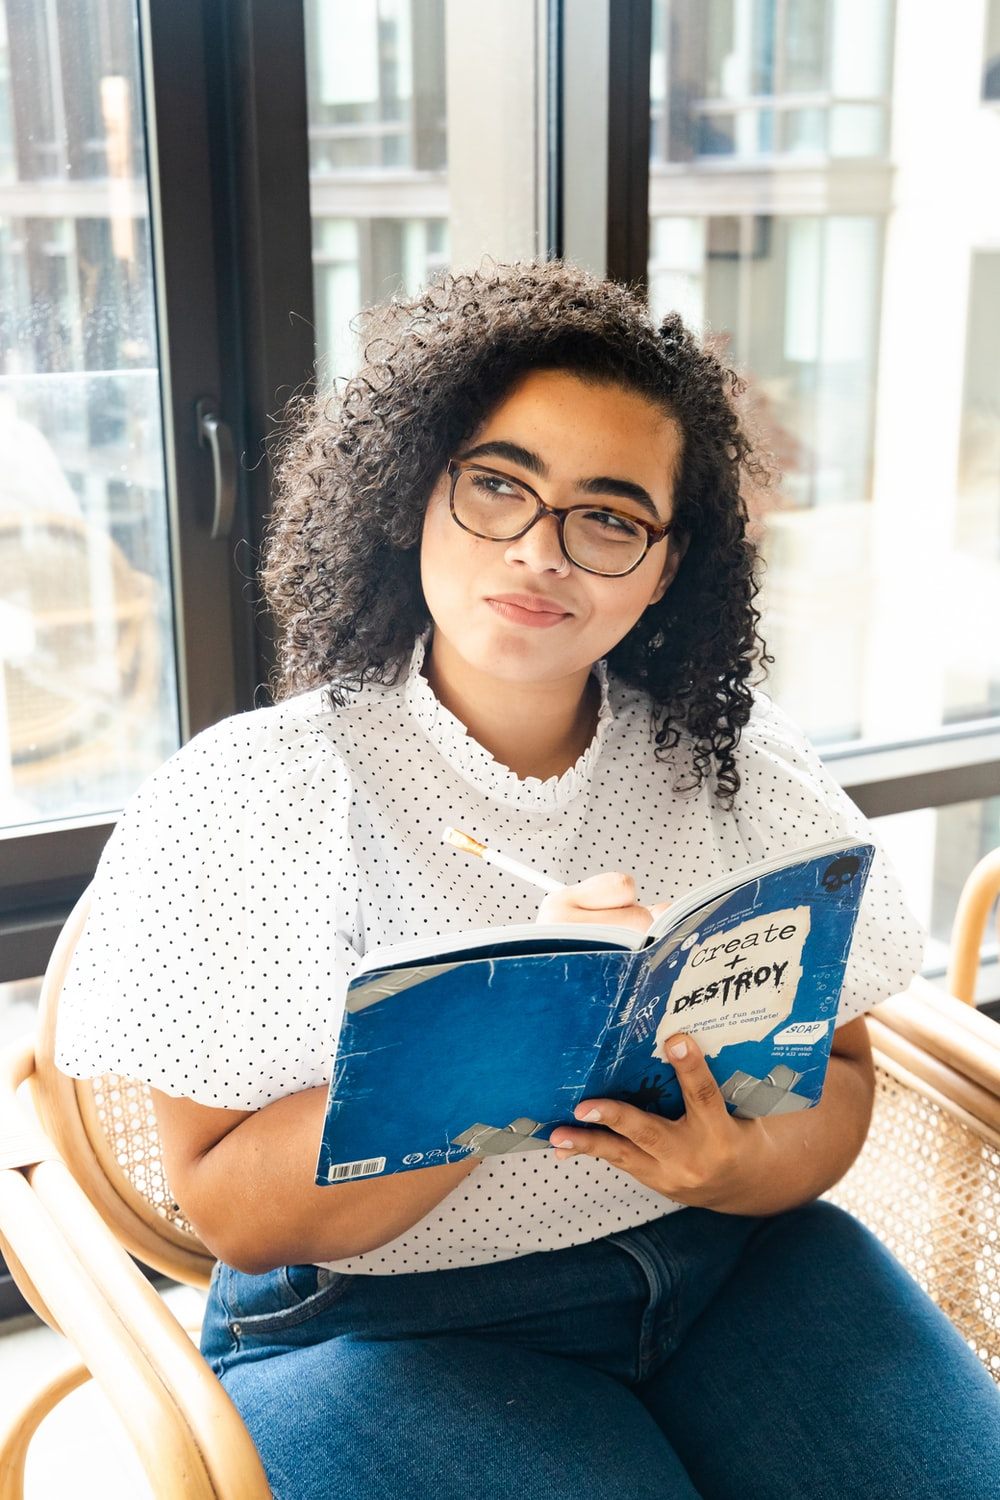 woman in white and black polka dot shirt holding blue and white book